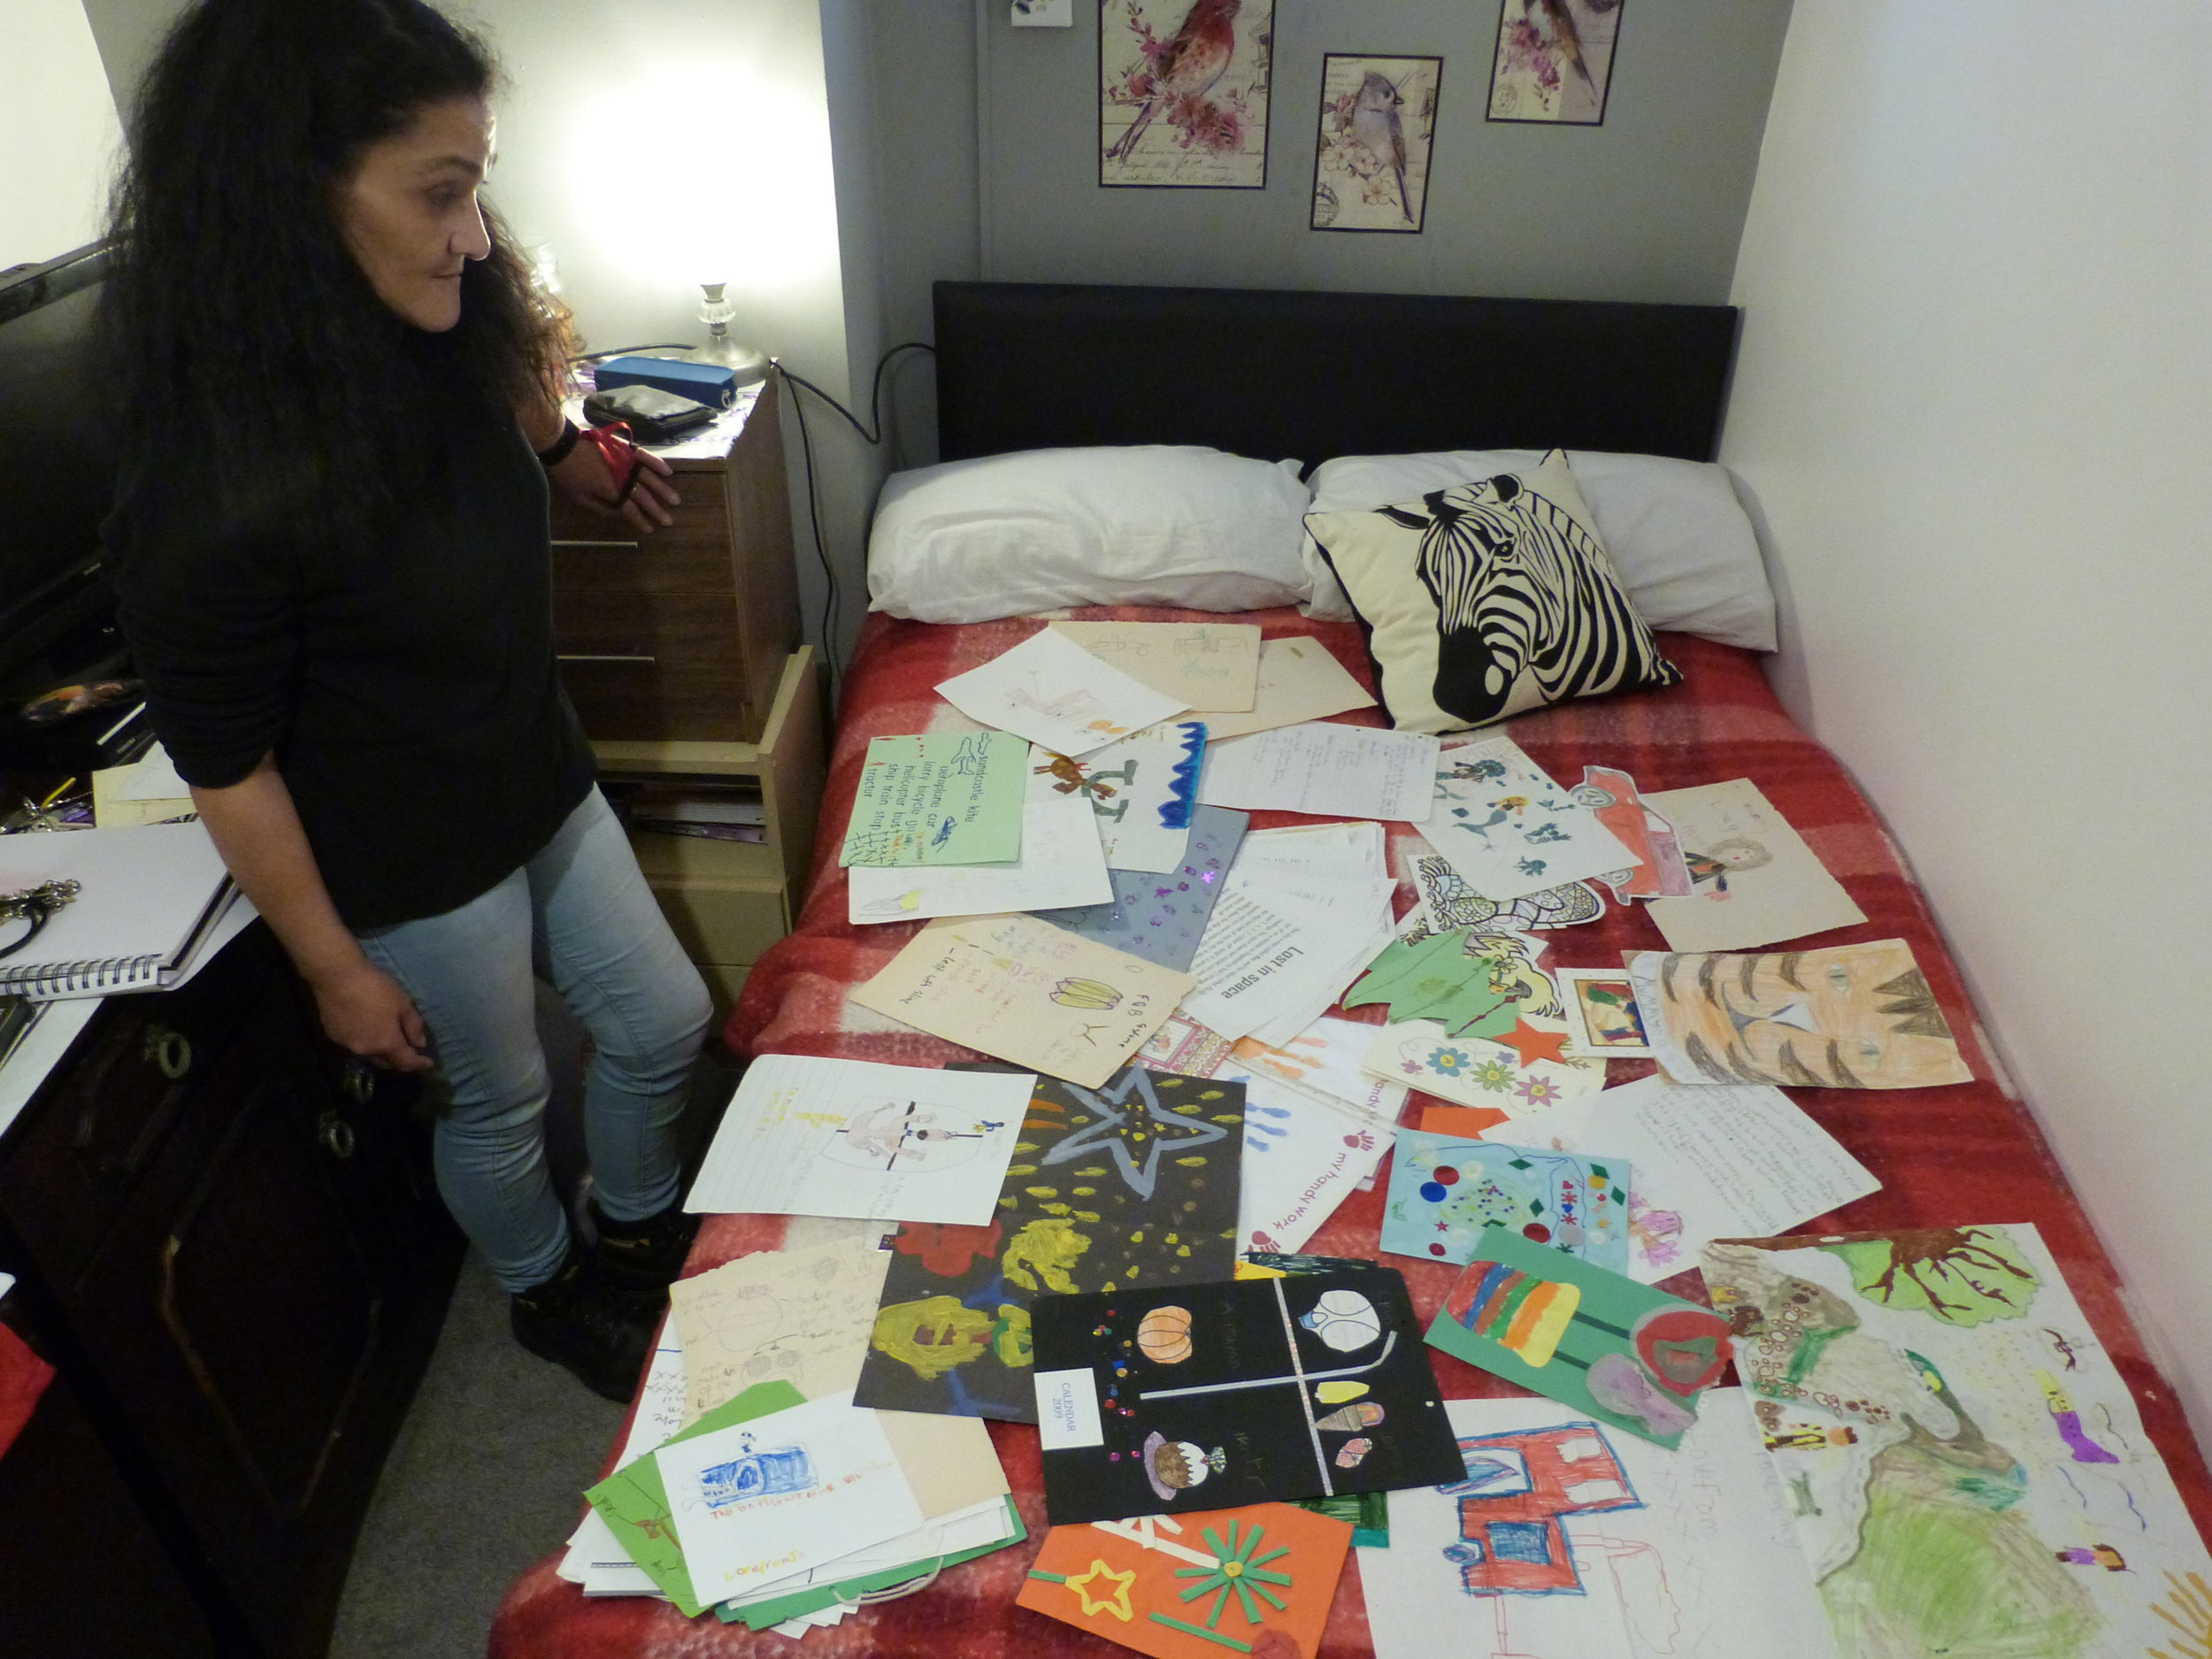 All the letters, cards and drawings Cookie received from her children and family while she was in prison